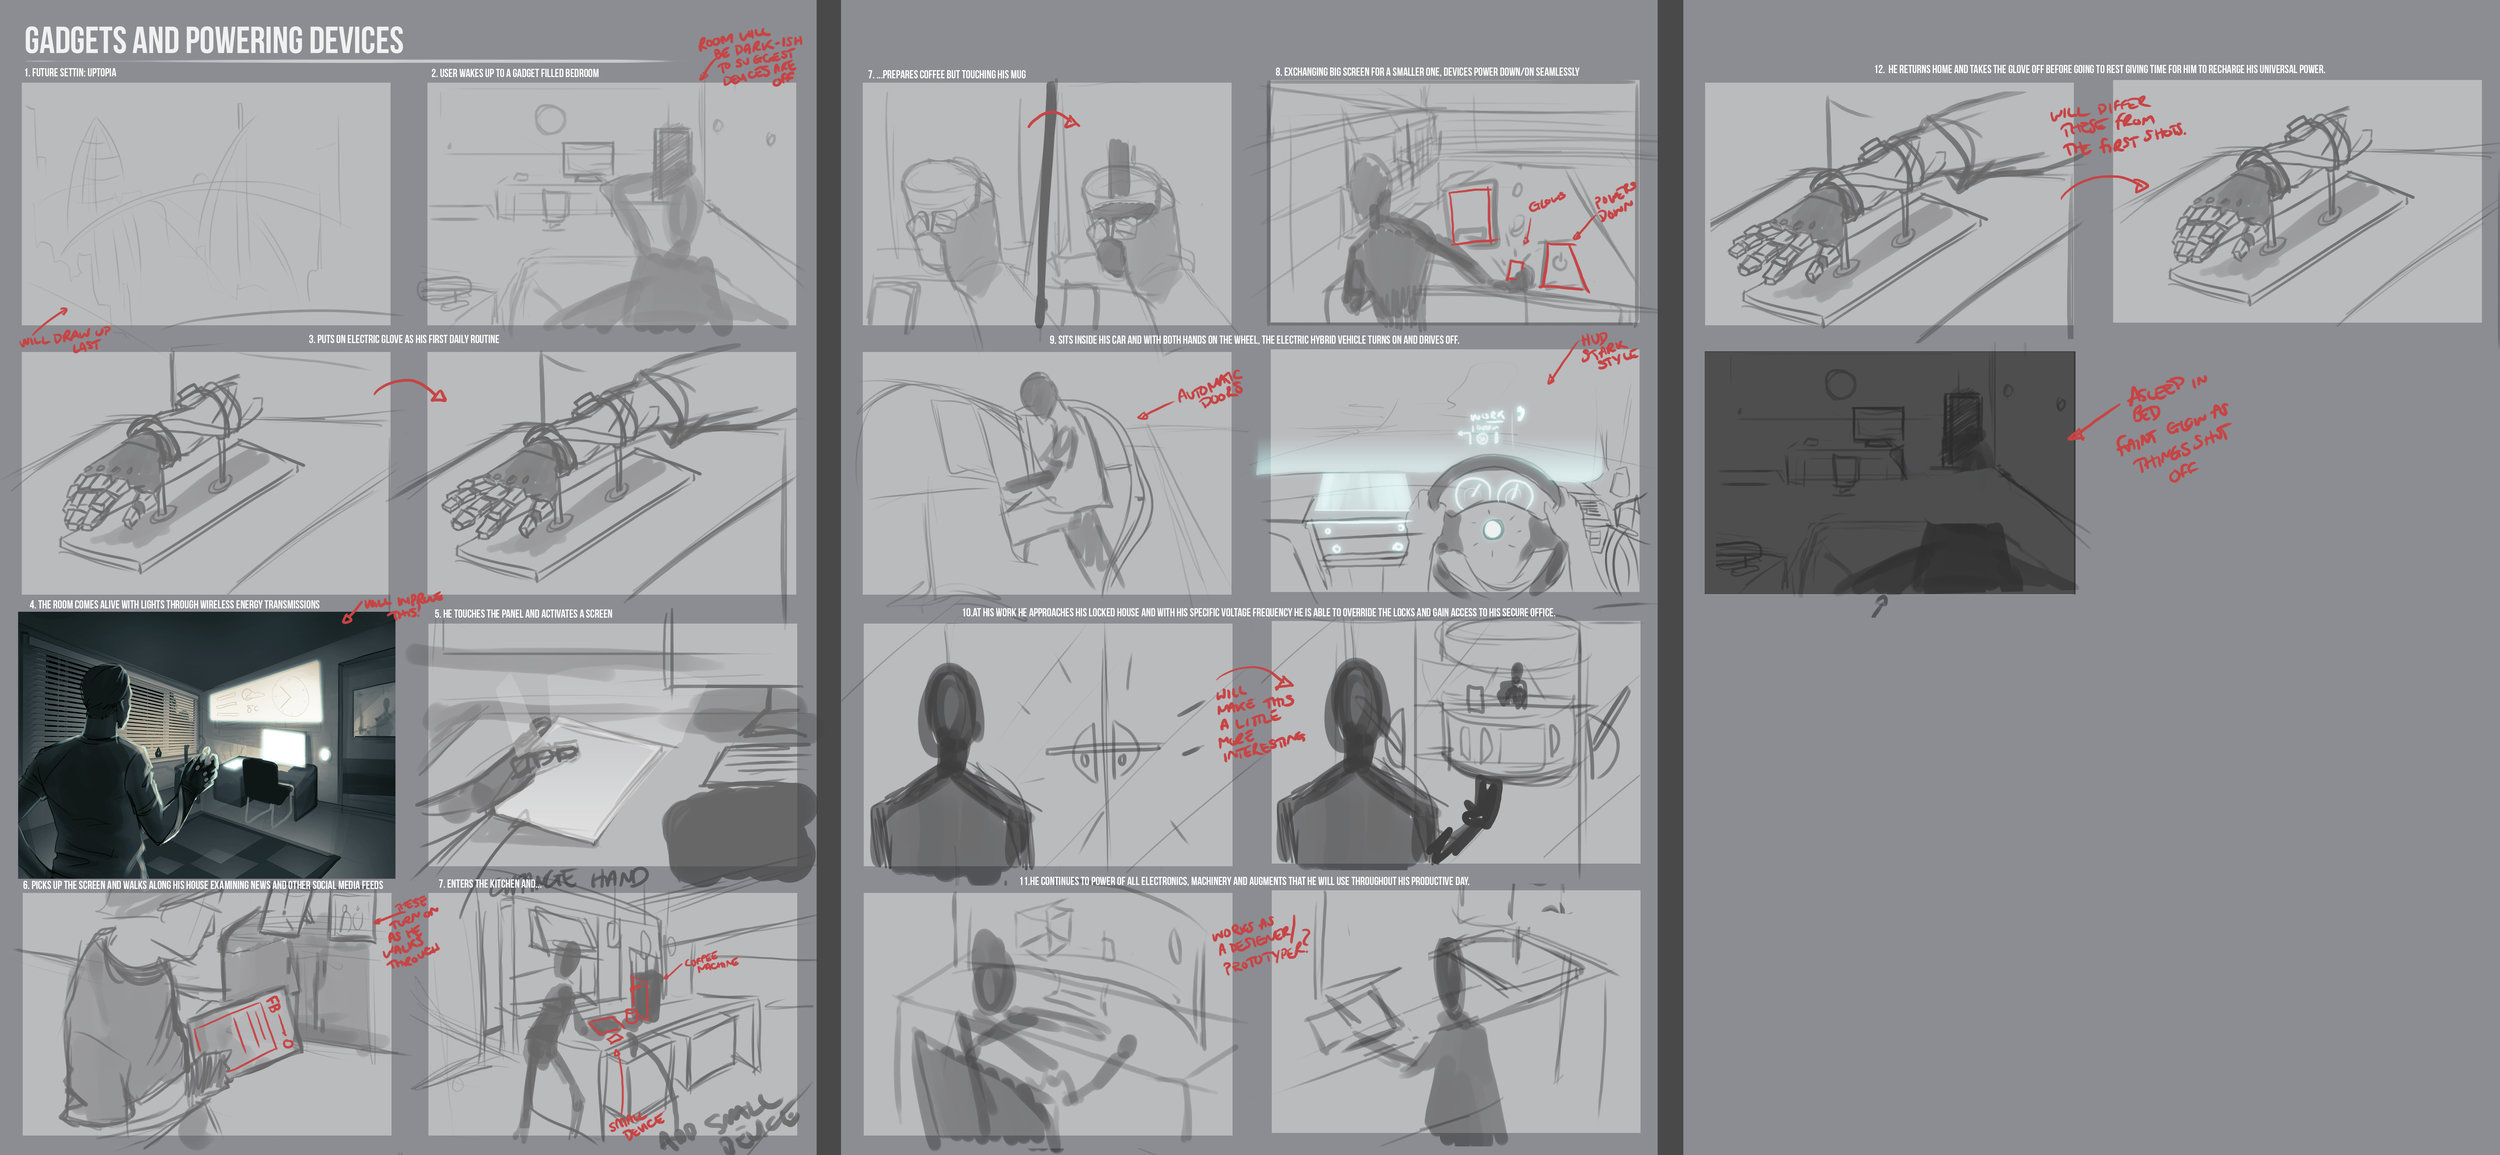 Concept storyboard developed with Daniel Francis [see http://www.ichi-dan.com/]